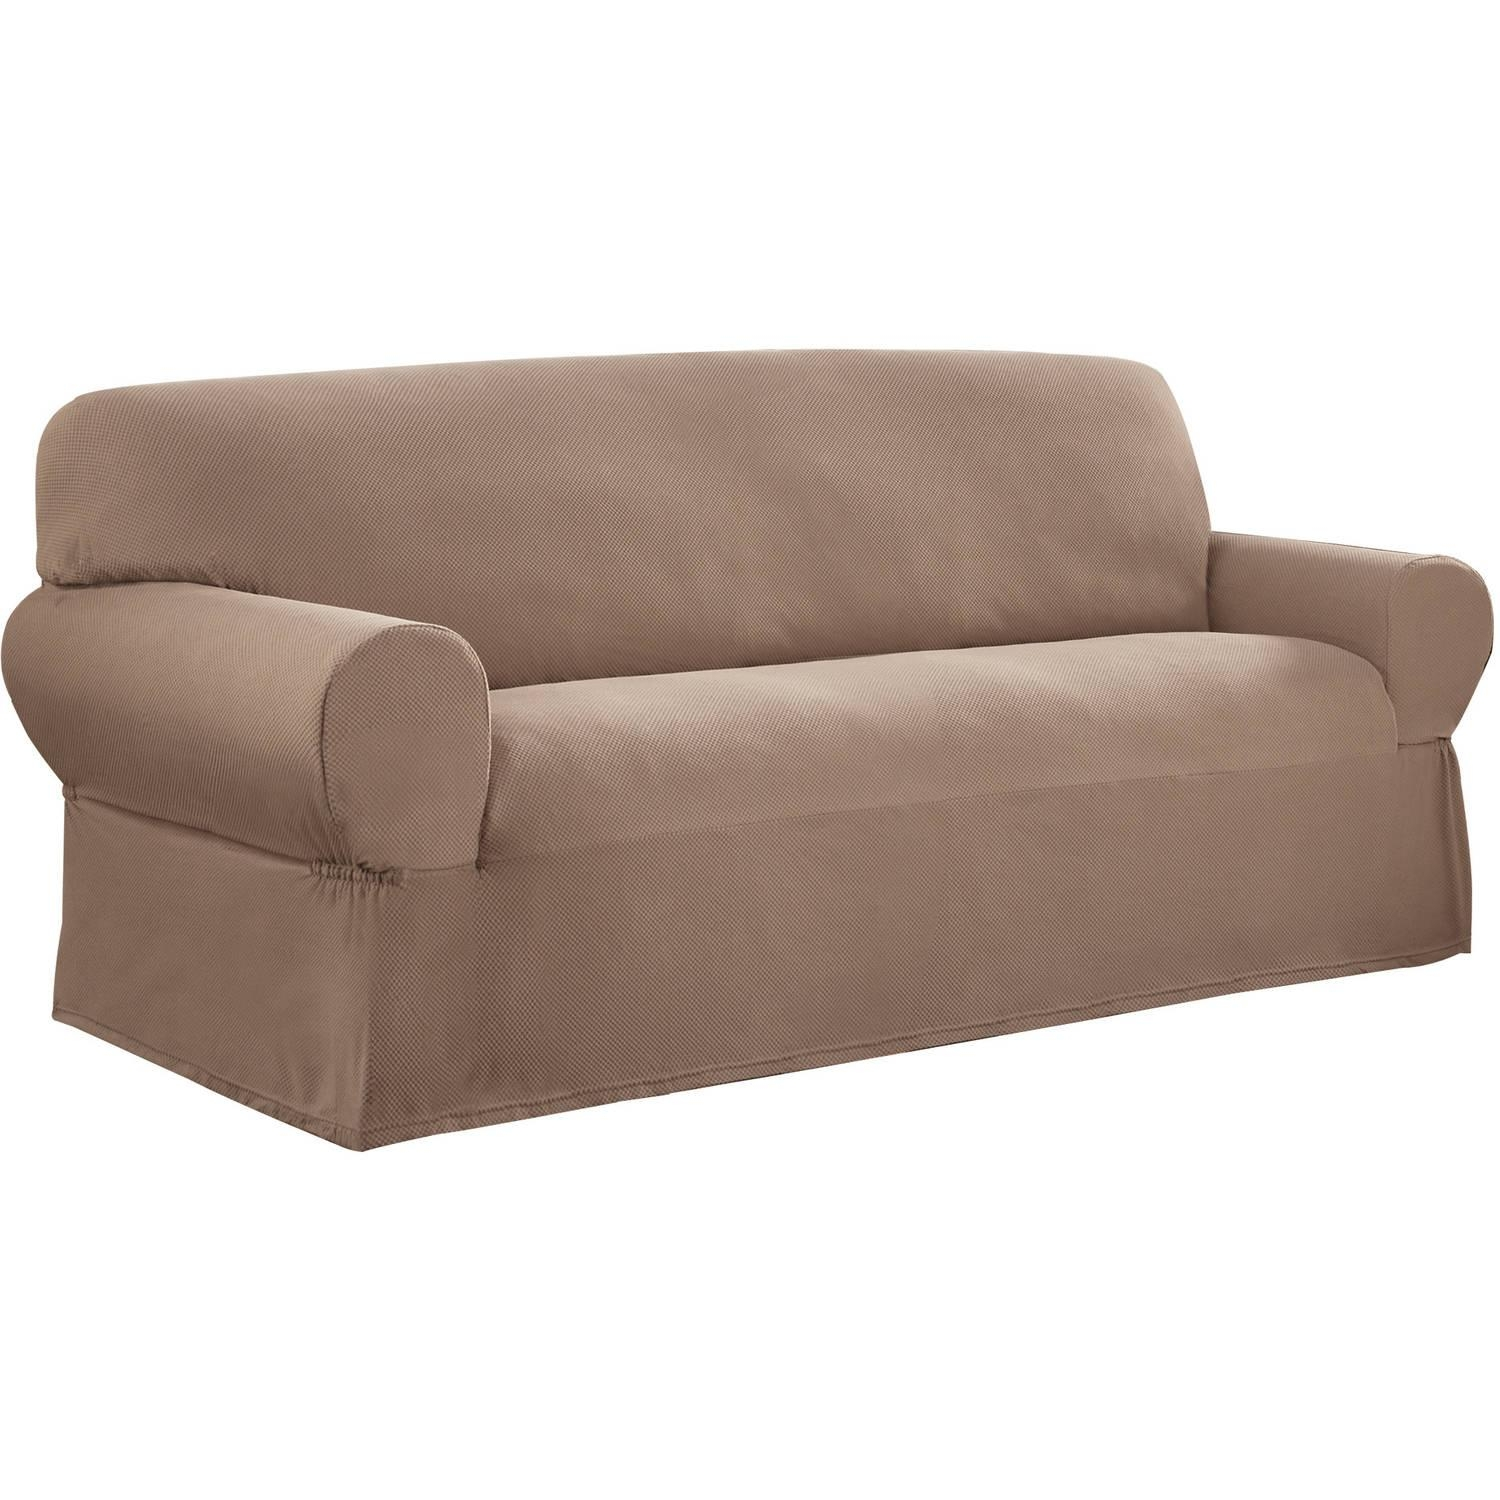 Sofas : Amazing T Cushion Loveseat Slipcover 3 Piece T Cushion With Regard To 2 Piece Sofa Covers (Image 18 of 27)